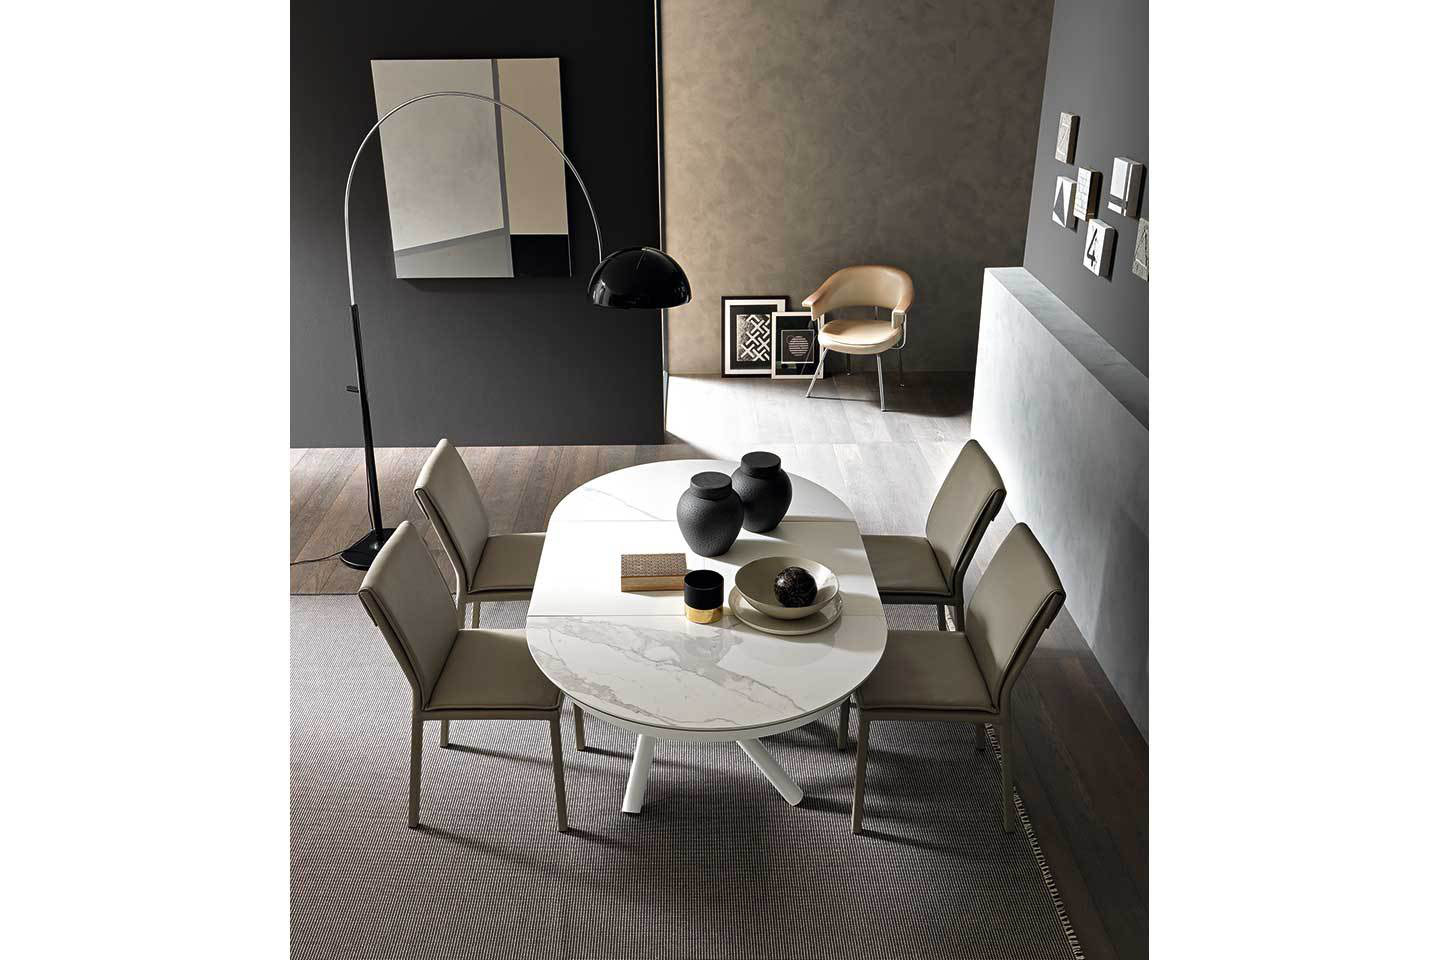 Mobili Italia_ALTACOM HELIOS lift table